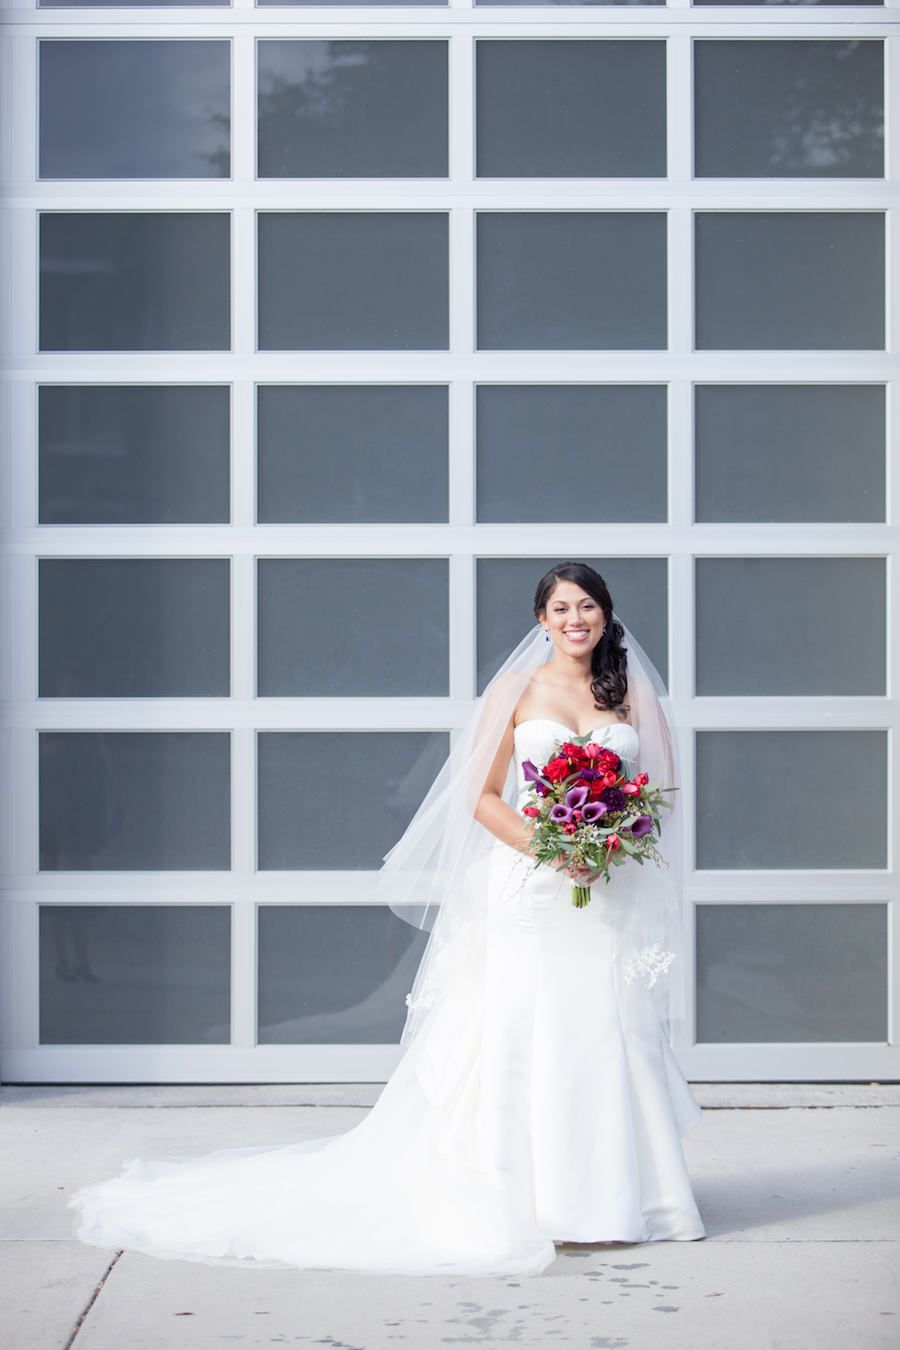 Bridal Portrait in White David's Bridal Sweetheart Strapless Wedding Dress and Red and Purple Wedding Bouquet with Greenery